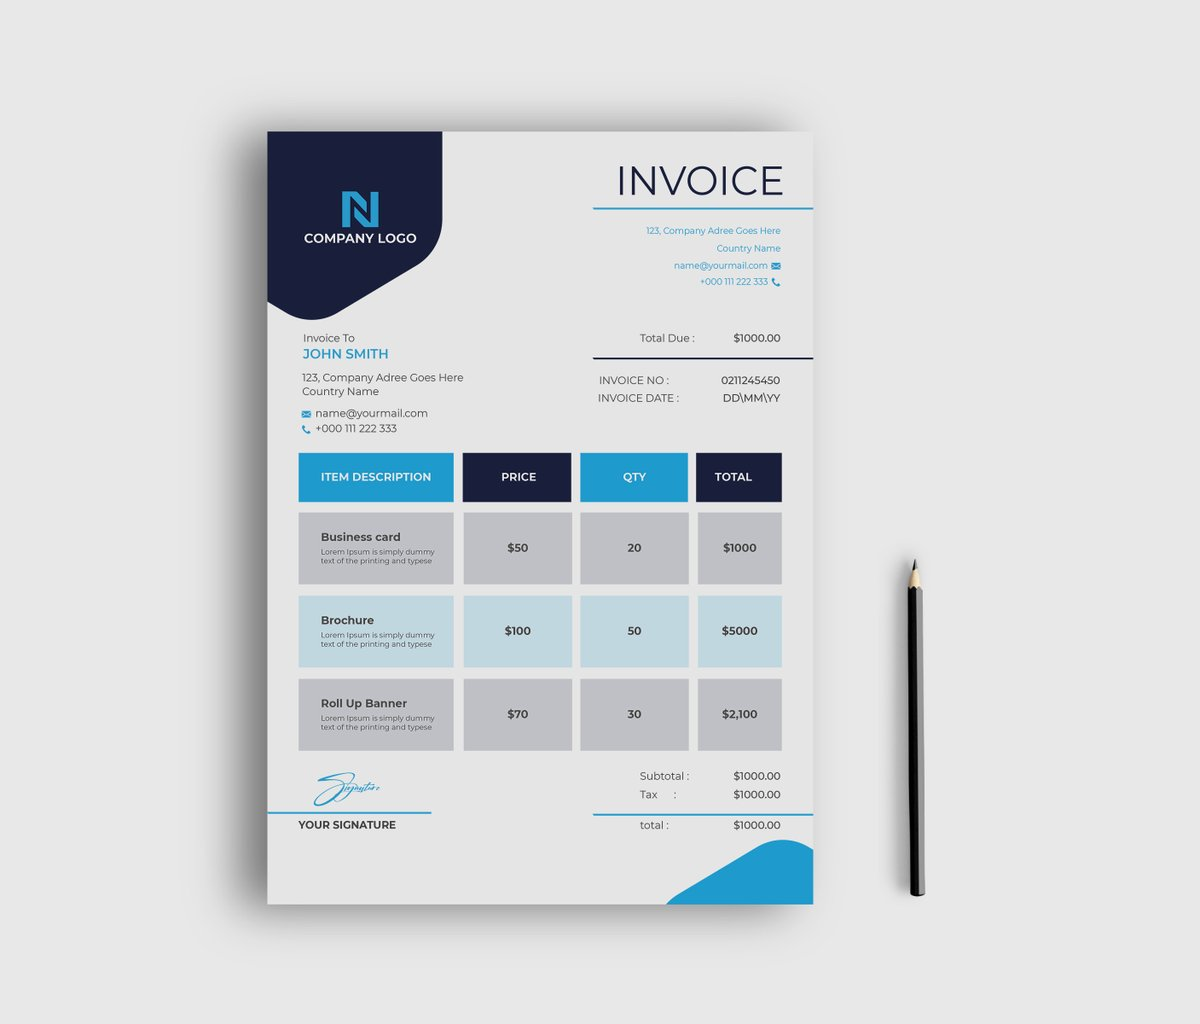 My new Xero or invoice design template. How is this? For a better view and download the template for free please visit: https://t.co/FNGN92CaA9  #Graphic_Designer #invoicedesign #Olympics #BTSonFallon #Olympics #FridayFeeling #OpeningCeremony #darkpoolcorruption https://t.co/EPsoghx2xj